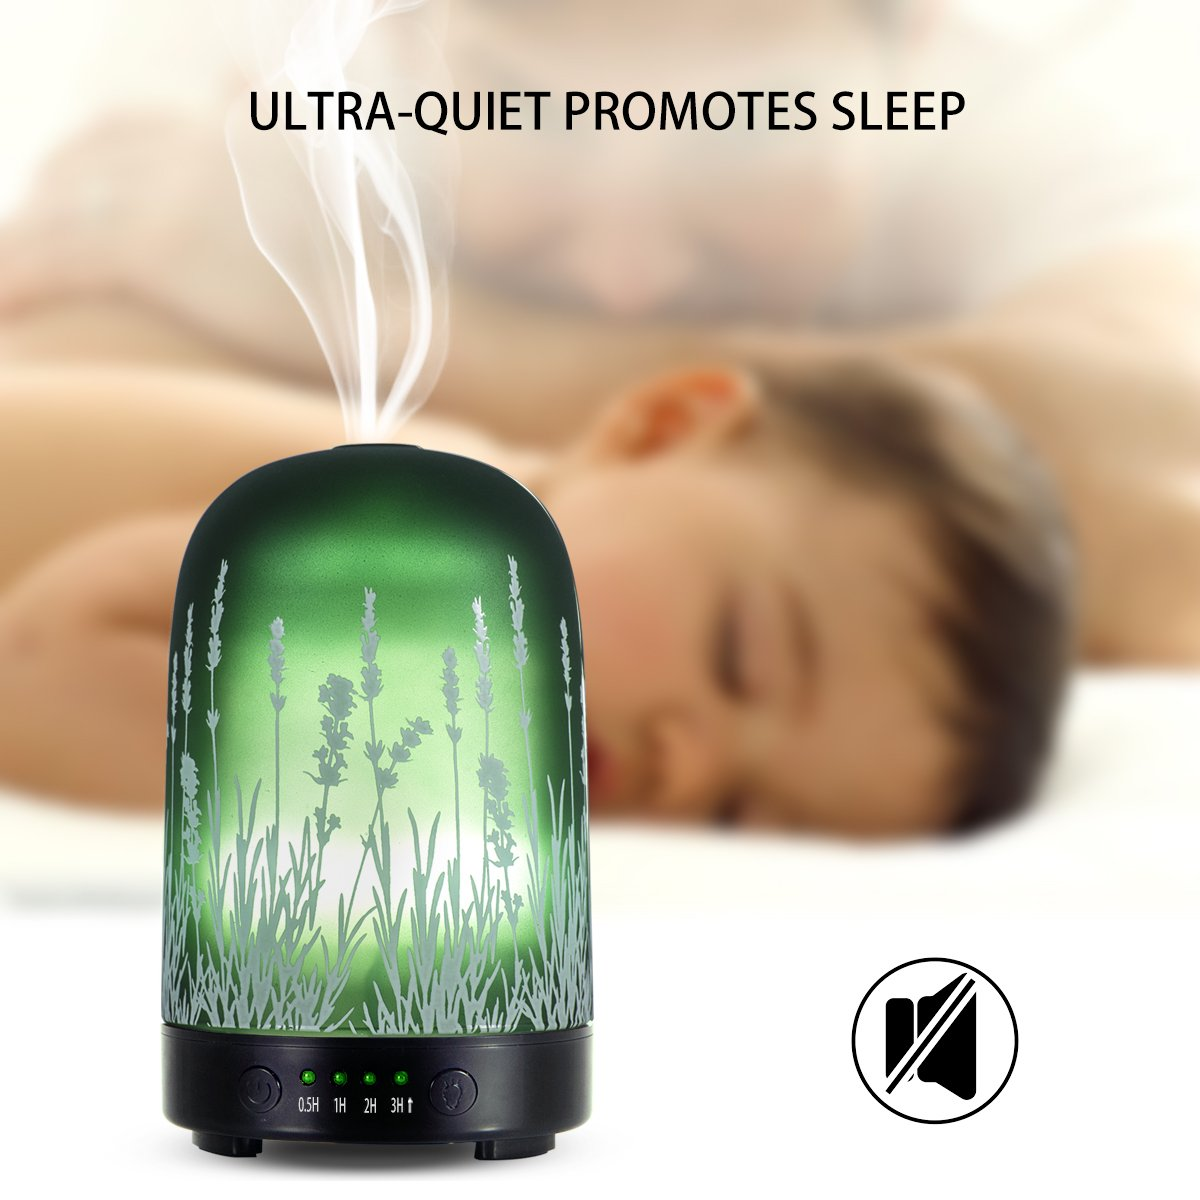 Aromatherapy Essential Oil Diffuser 100ml Glass Fragrance Lavender Cold Mist Humidifier Waterless Automatic Shutdown 7 Colour LED Lights 4 Timed Settings For Home Office Yoga Spa ?- ¡ by PUSEAYZ (Image #6)